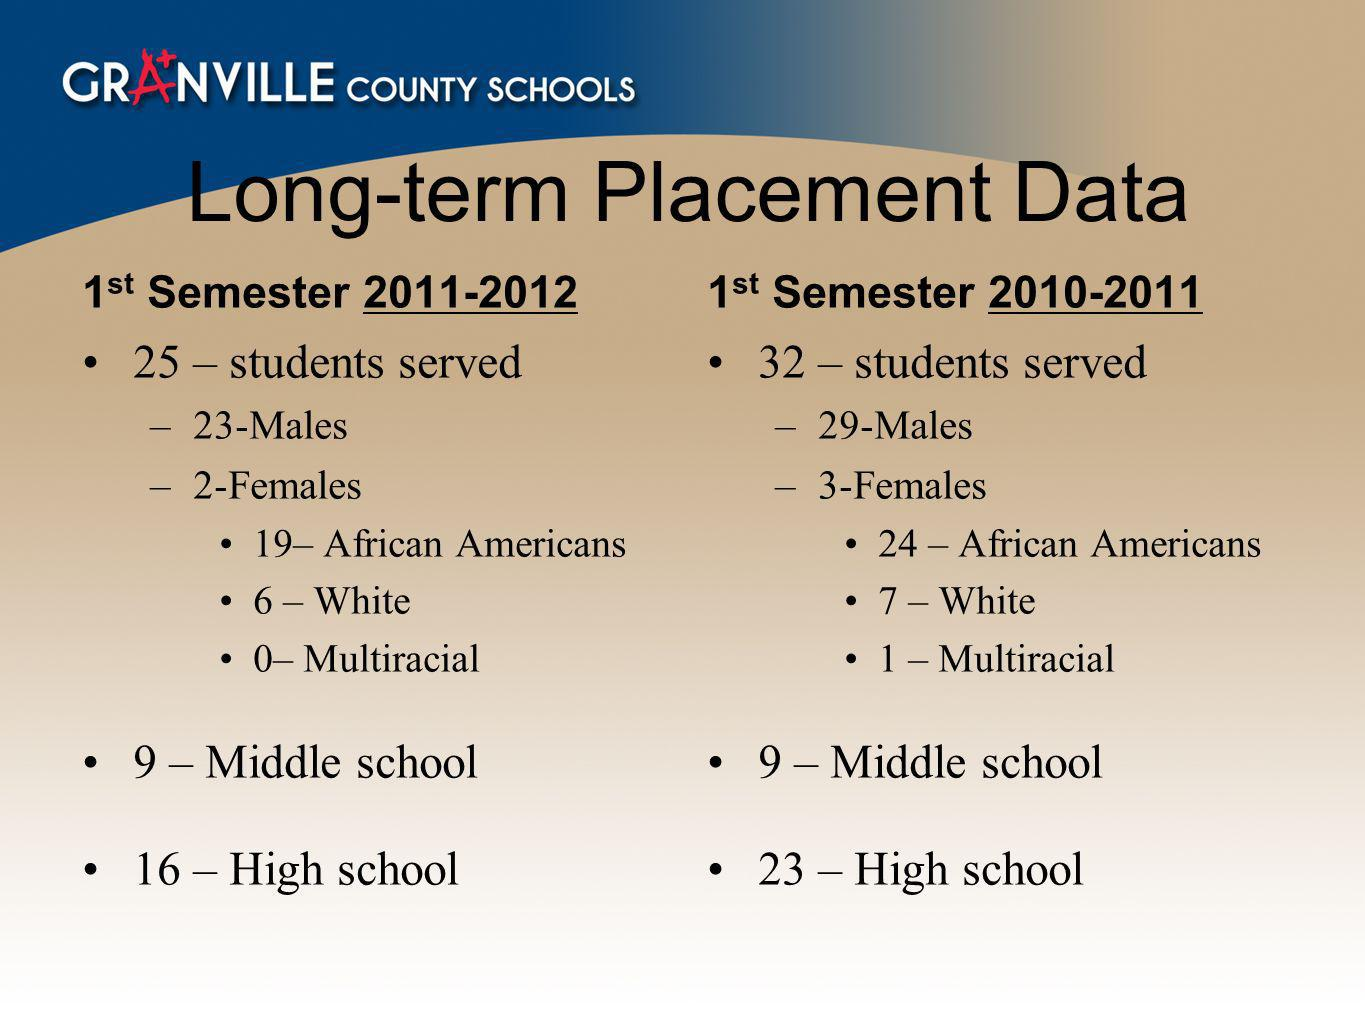 Long-term Placement Data 1 st Semester 2011-2012 25 – students served –23-Males –2-Females 19– African Americans 6 – White 0– Multiracial 9 – Middle school 16 – High school 1 st Semester 2010-2011 32 – students served –29-Males –3-Females 24 – African Americans 7 – White 1 – Multiracial 9 – Middle school 23 – High school